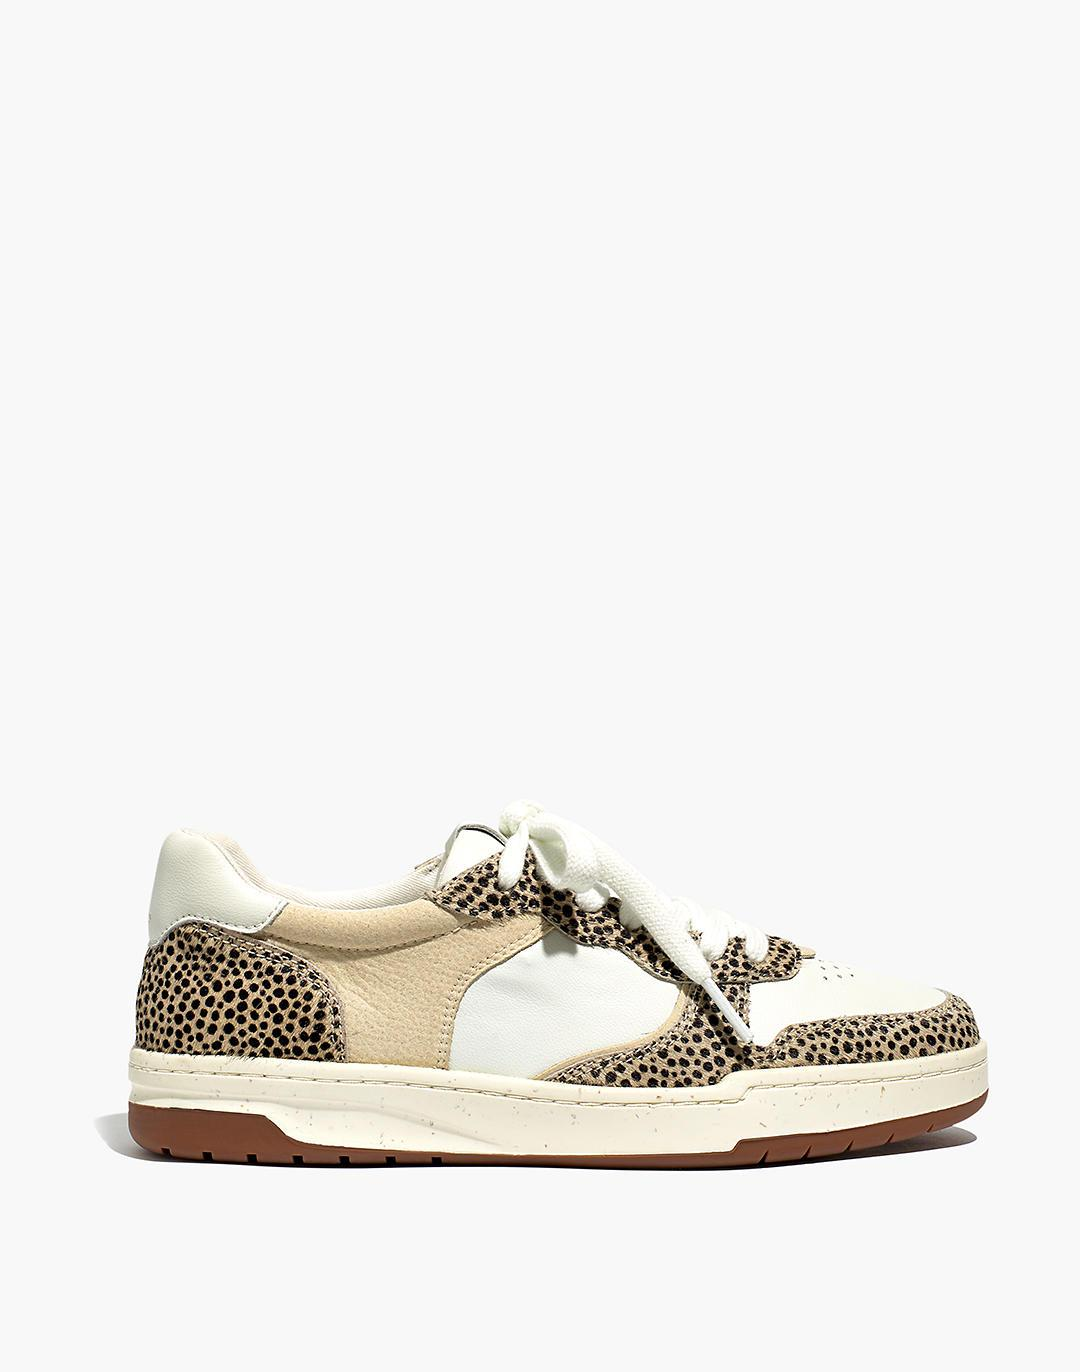 Court Sneakers in Spotted Calf Hair